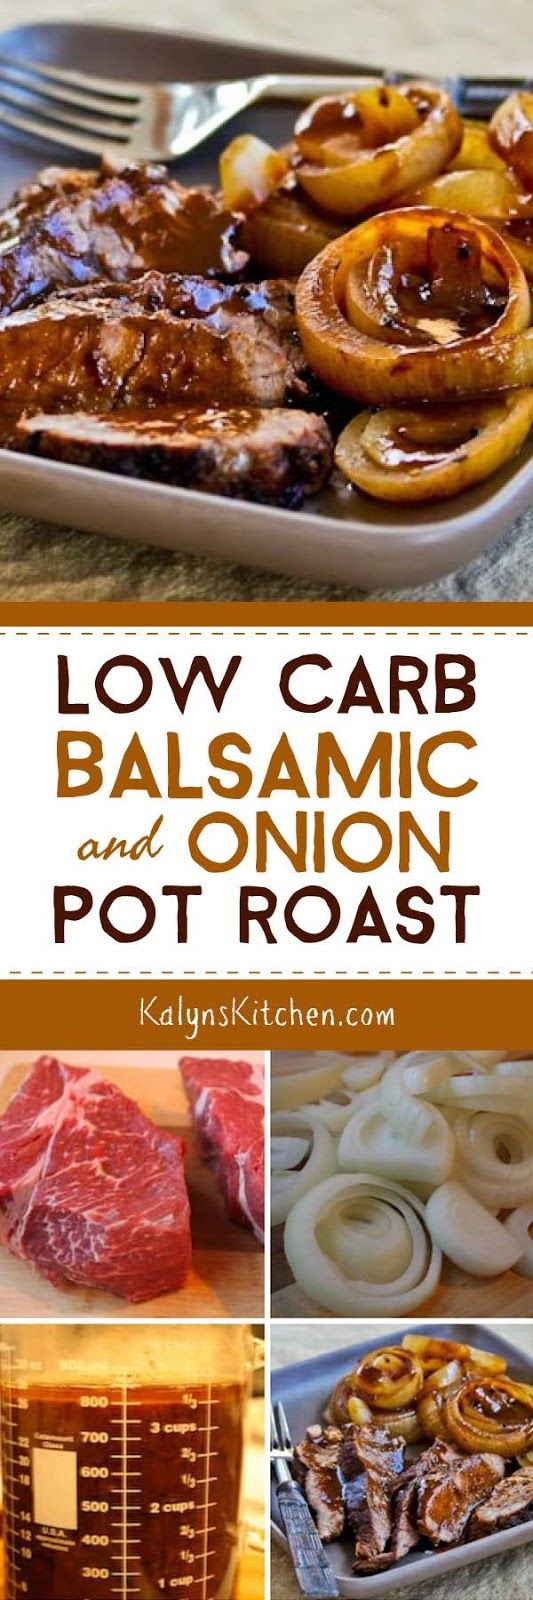 How to Make Pot Roast in a Crockpot and Low-Carb Balsamic and Onion Pot Roast found on KalynsKitchen.com